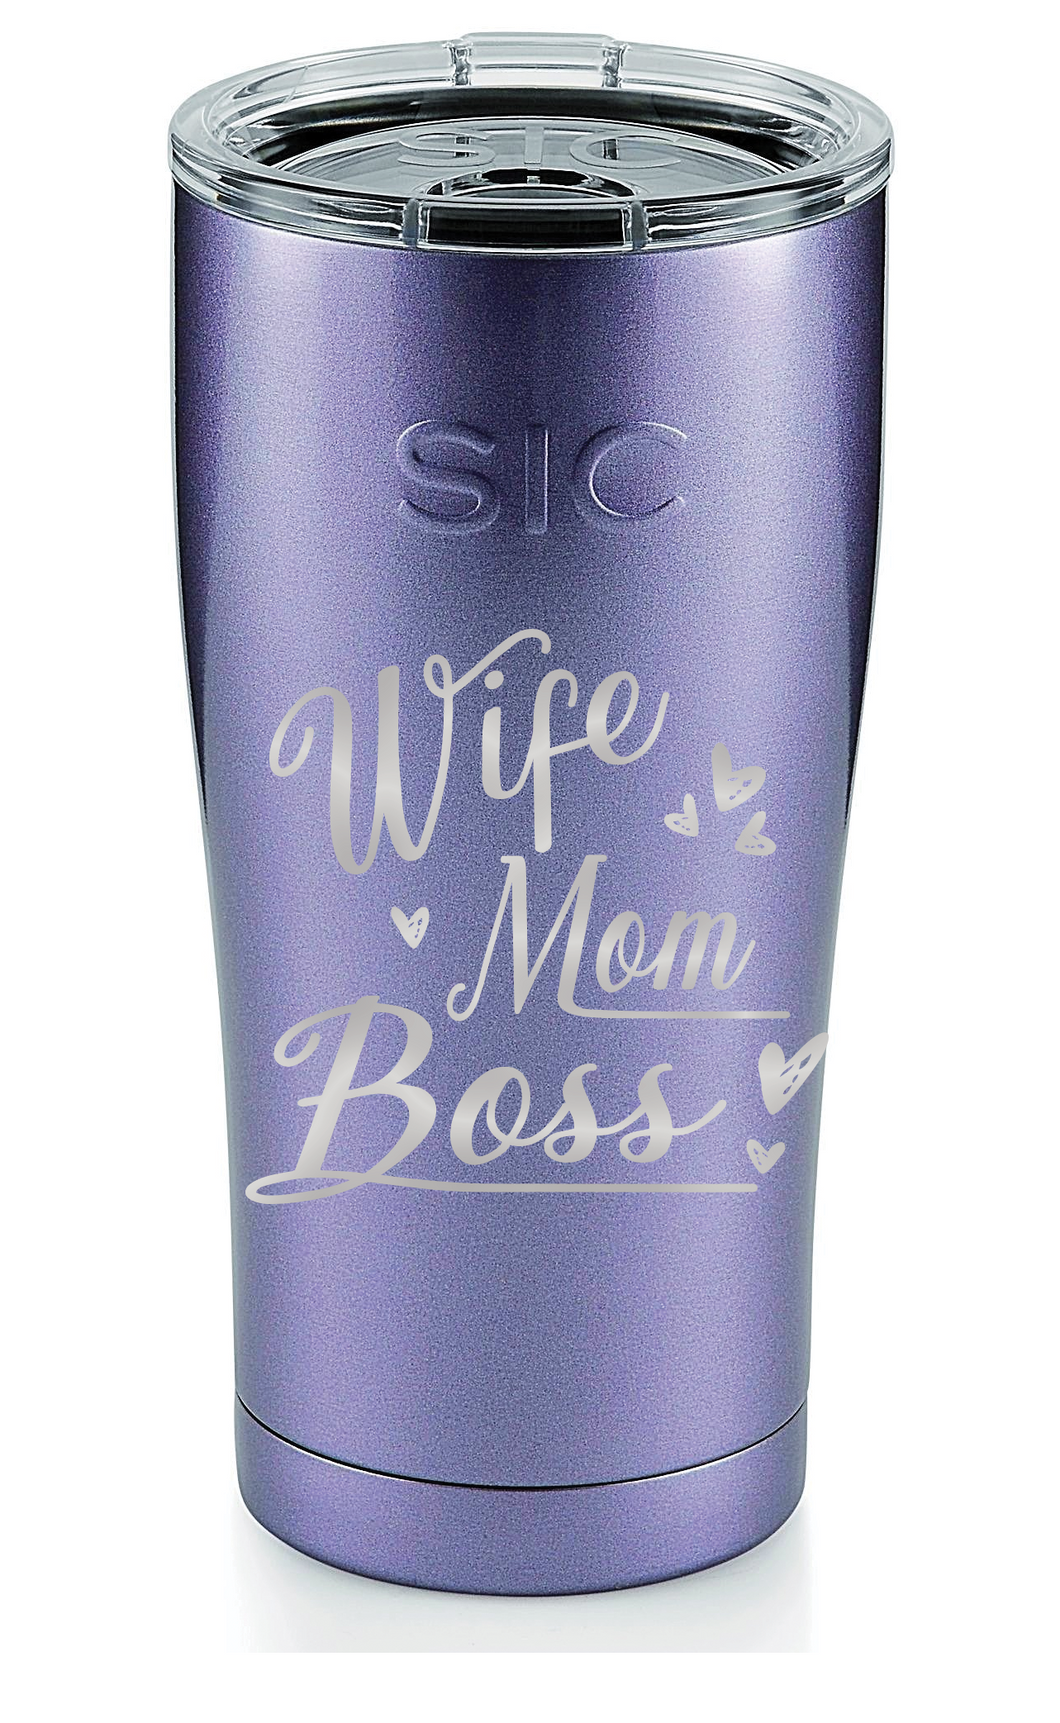 Personalized Wife,Mom, Boss SIC 20oz Tumbler - Ultraviolet Glitter by: Northwest Snap, Inc. Customized with Your Personalization